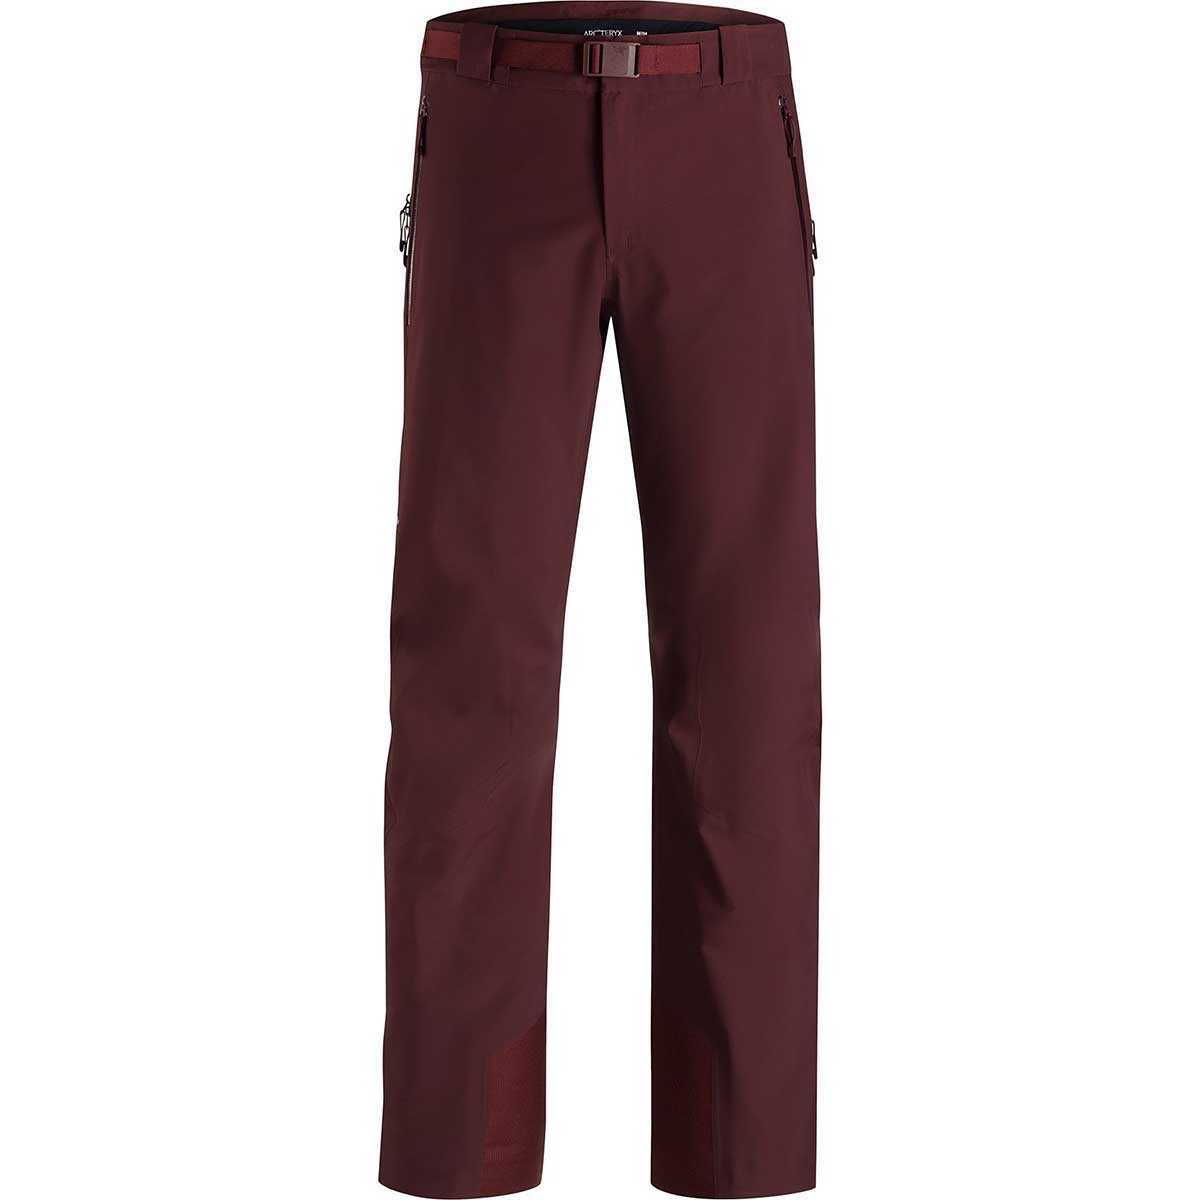 Arcteryx men's Sabre LT Pant in Flux front view